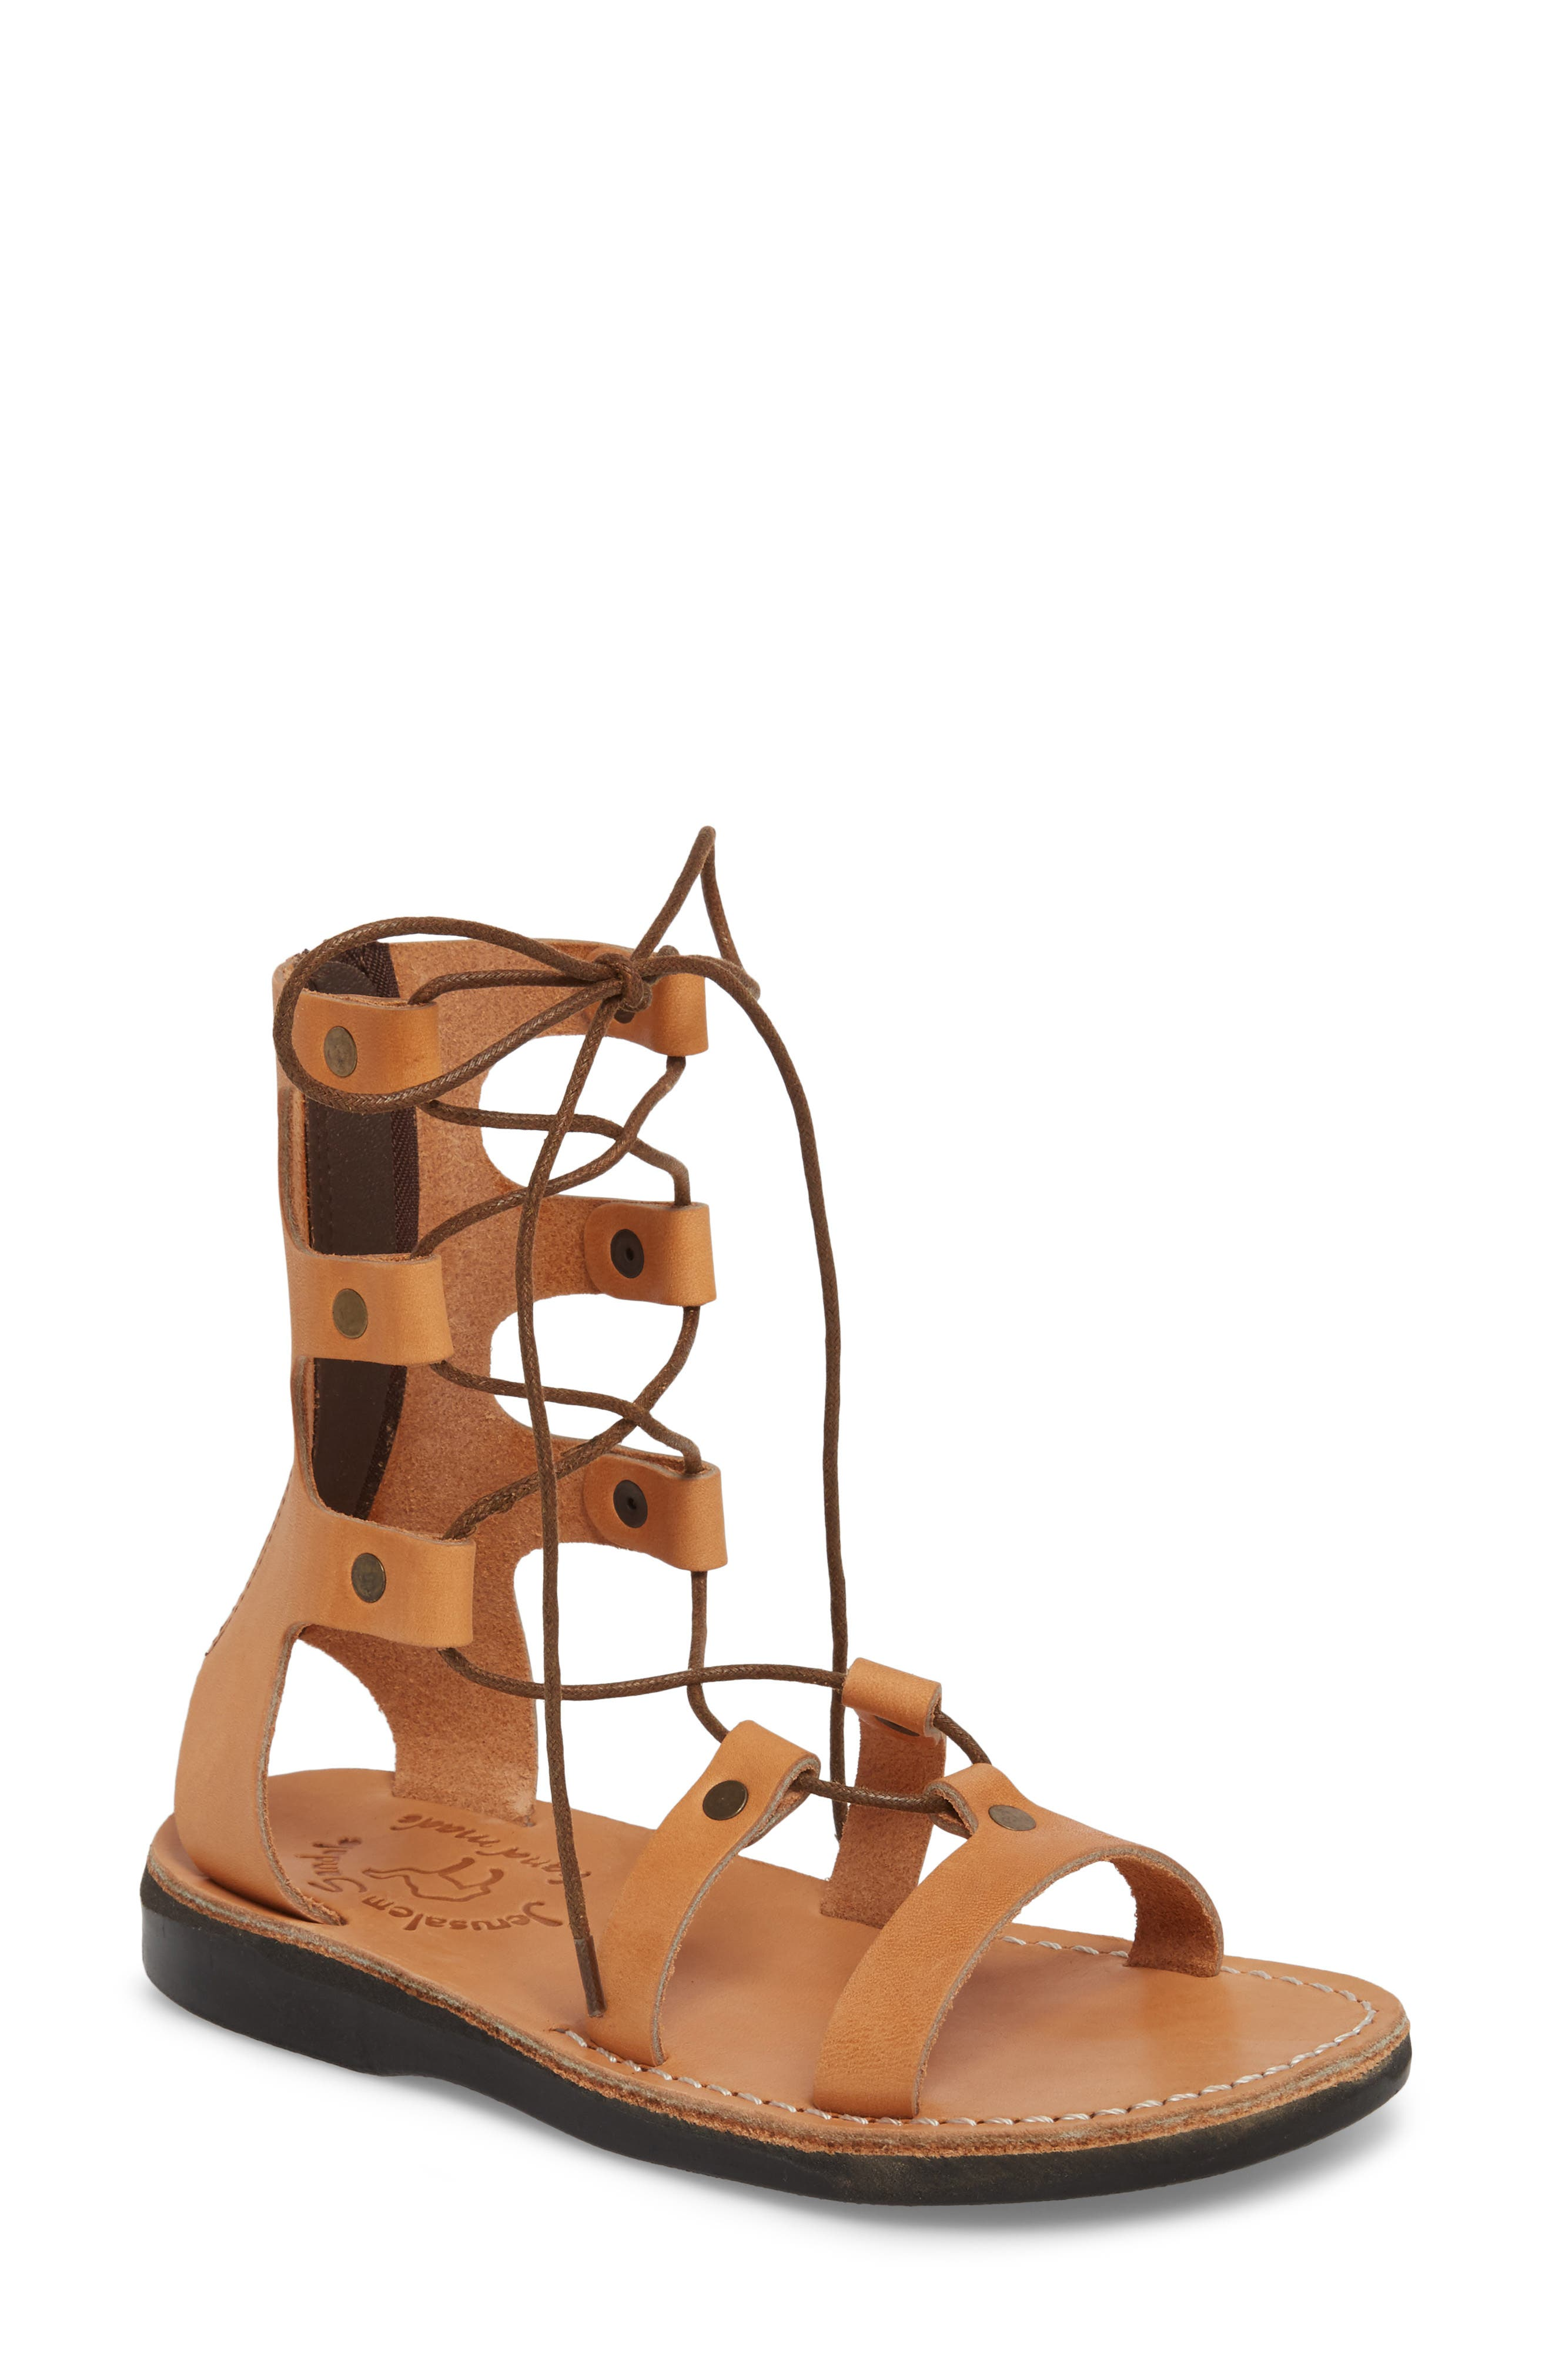 Designed as a tribute to 2,000-year-old Middle Eastern footwear, these natural-leather sandals are handmade in Israel by skilled craftsmen. We\\\'re not saying that they\\\'ll last for 40 years in the wilderness, but they sure are comfortable. Style Name: Jerusalem Sandals Rebecca Sandal (Women). Style Number: 5530854. Available in stores.